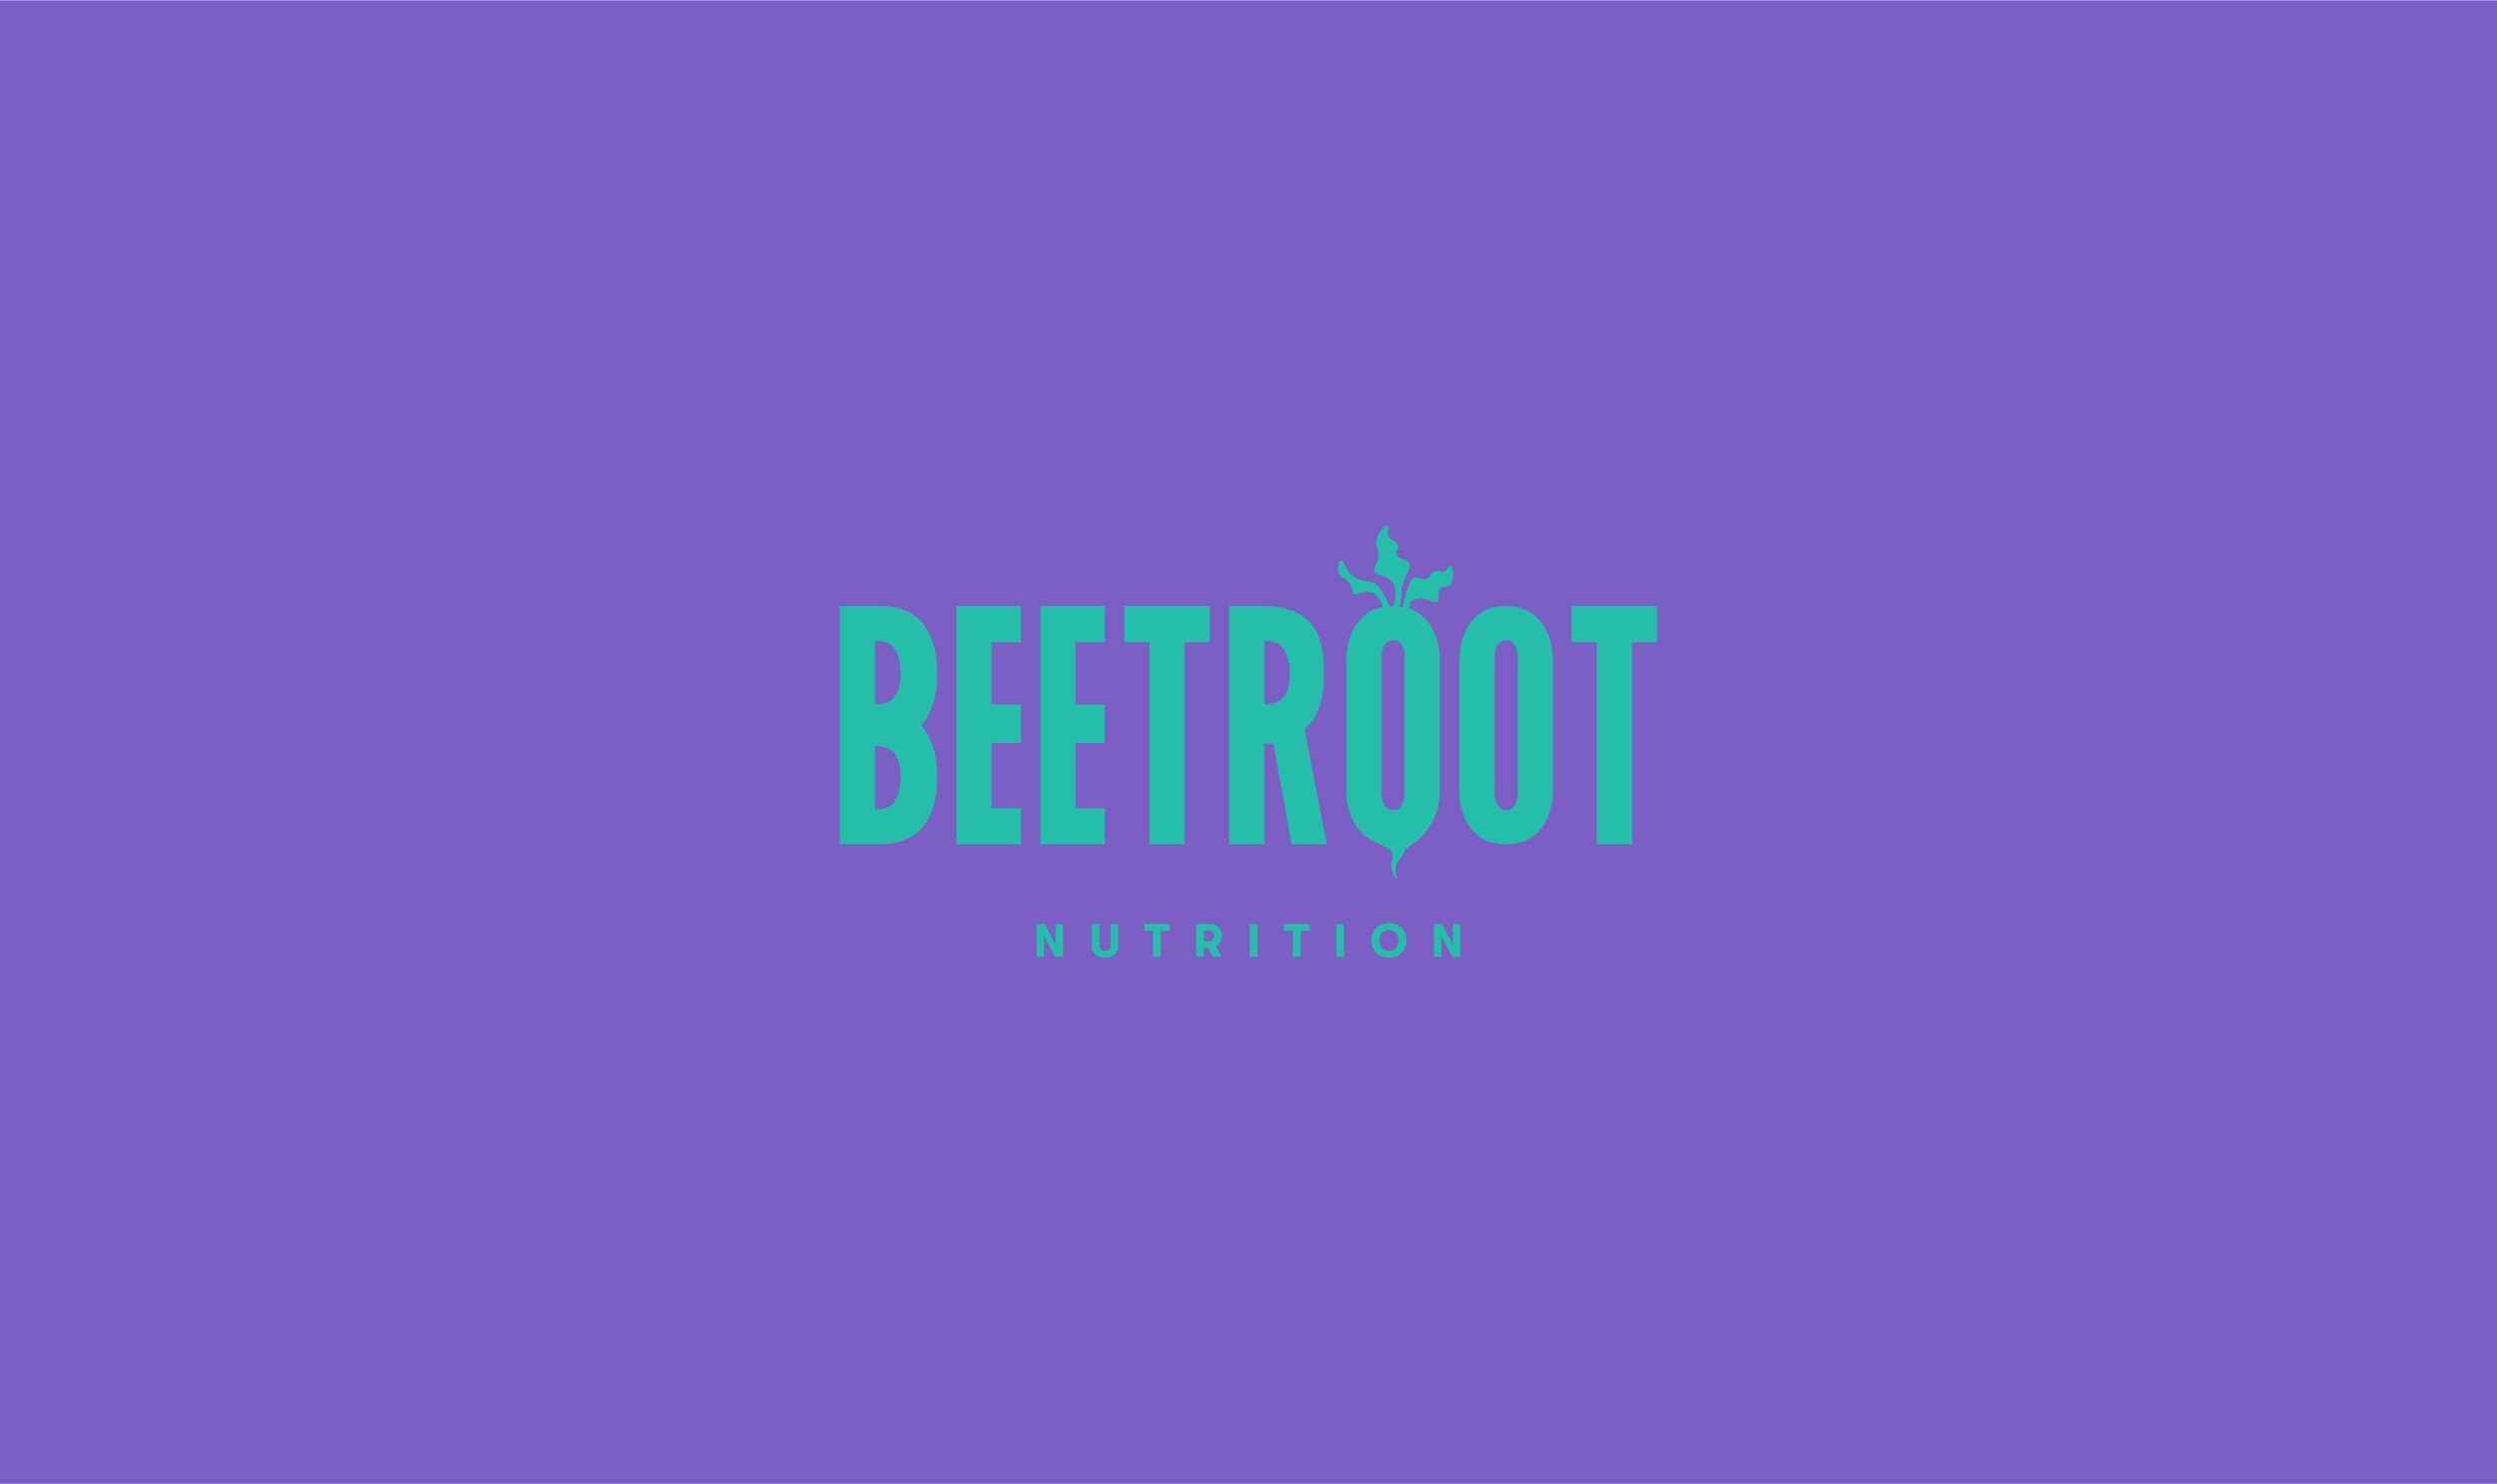 Beetroot_Packaging_New-01.png